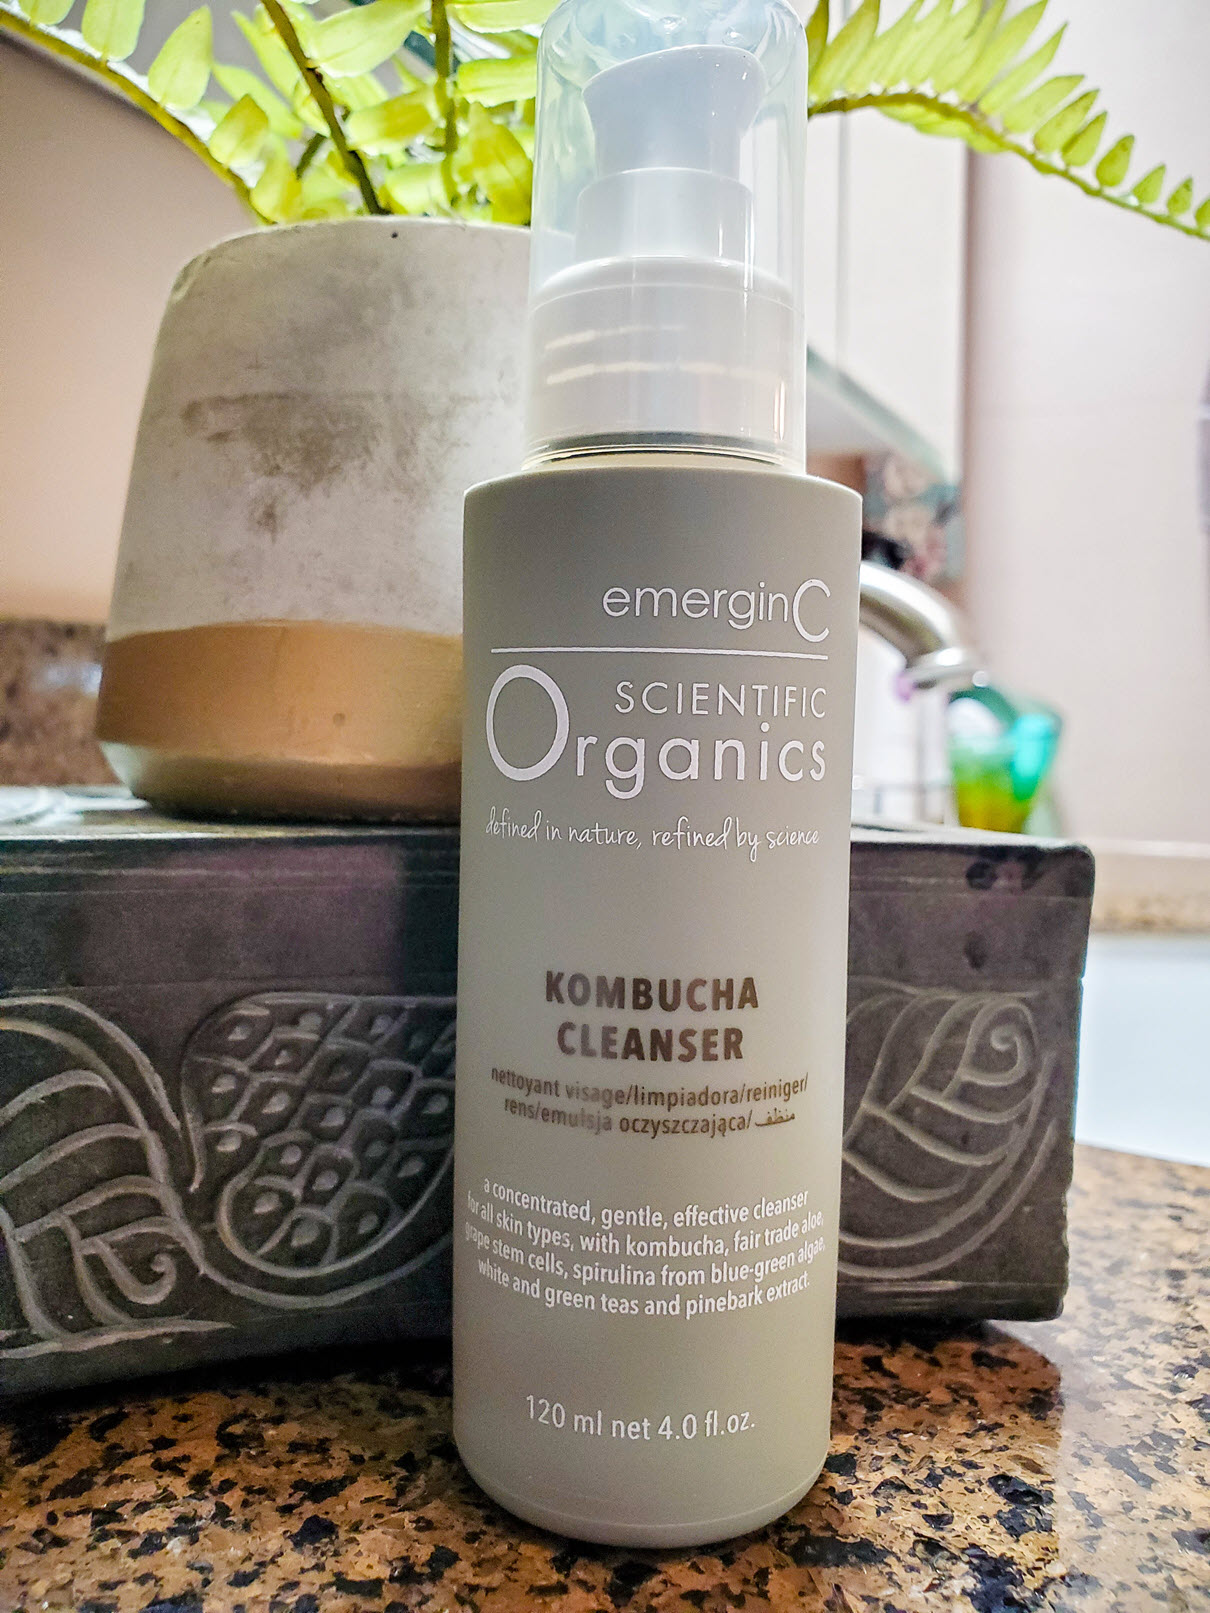 emerginC Scientific Organics Kombucha Cleanser